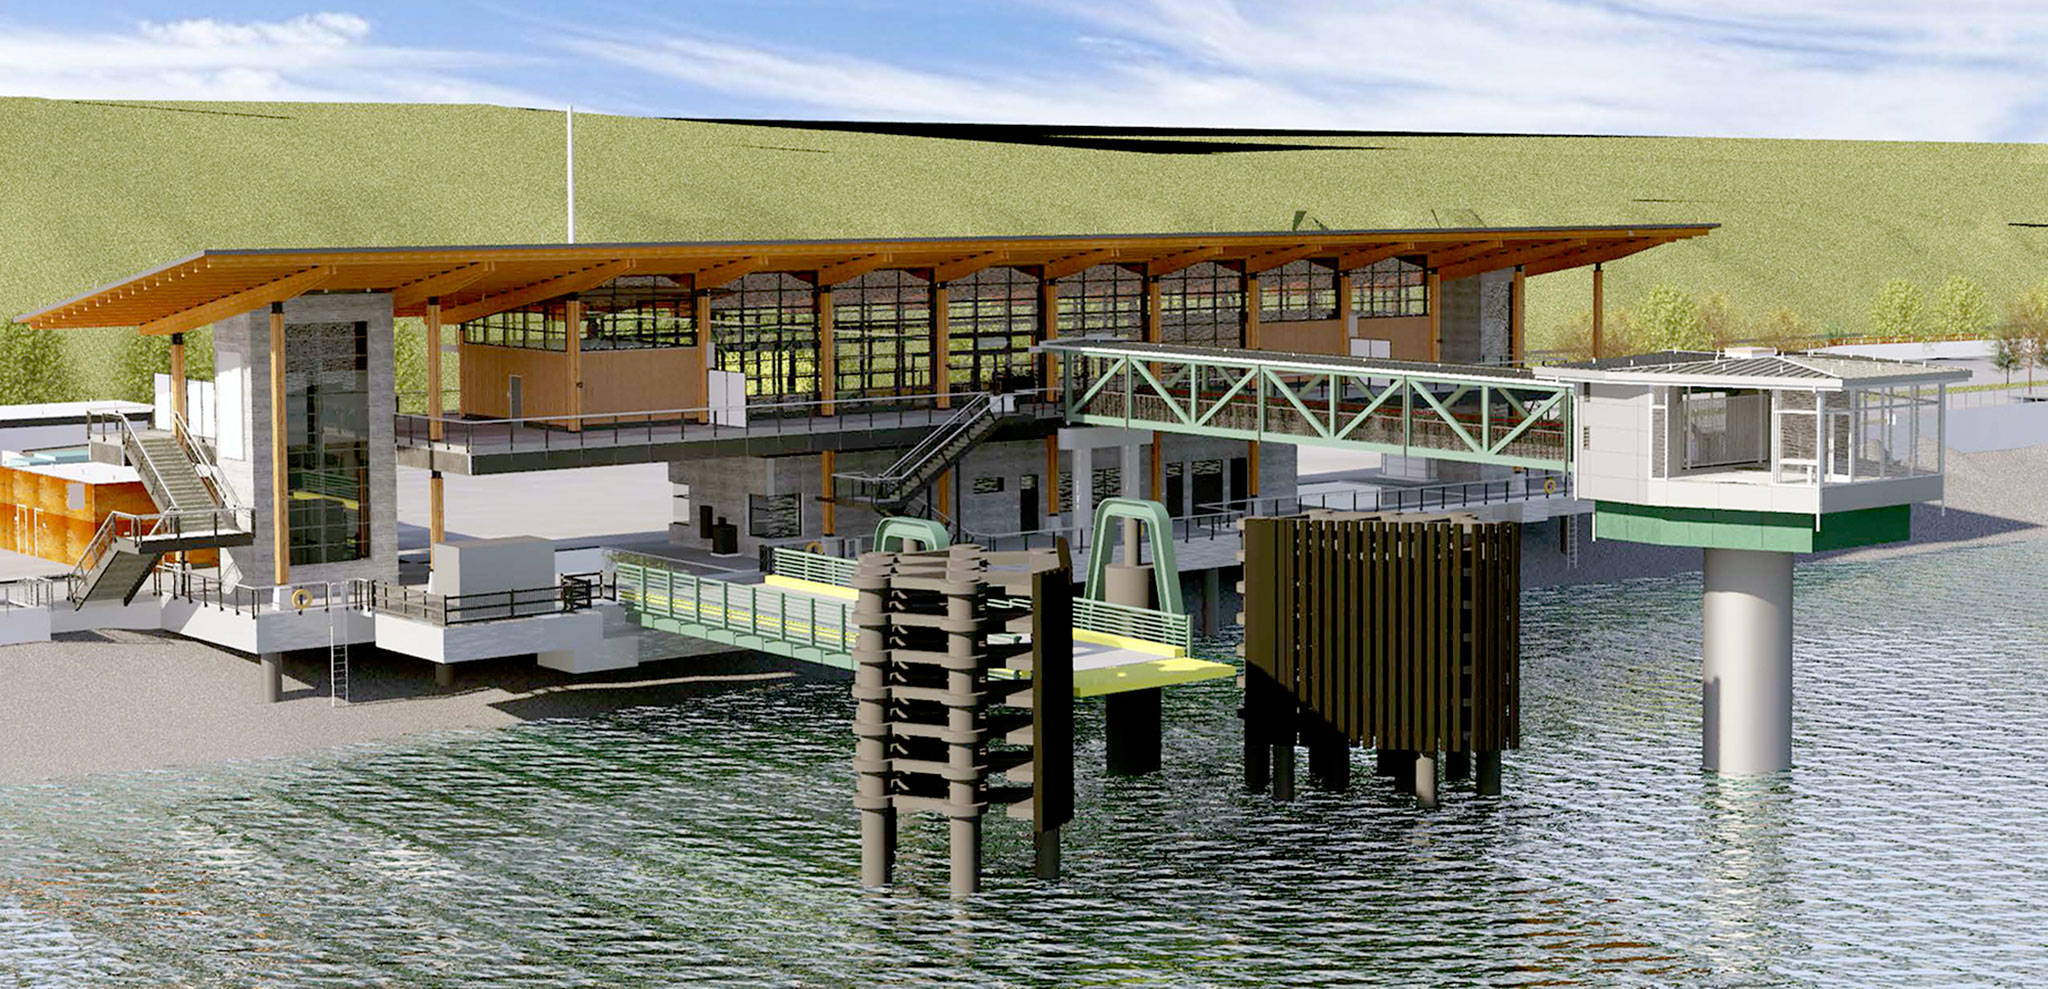 An artist's rendering shows the new ferry terminal under construction in Mukilteo. (Washington State Department of Transportation)